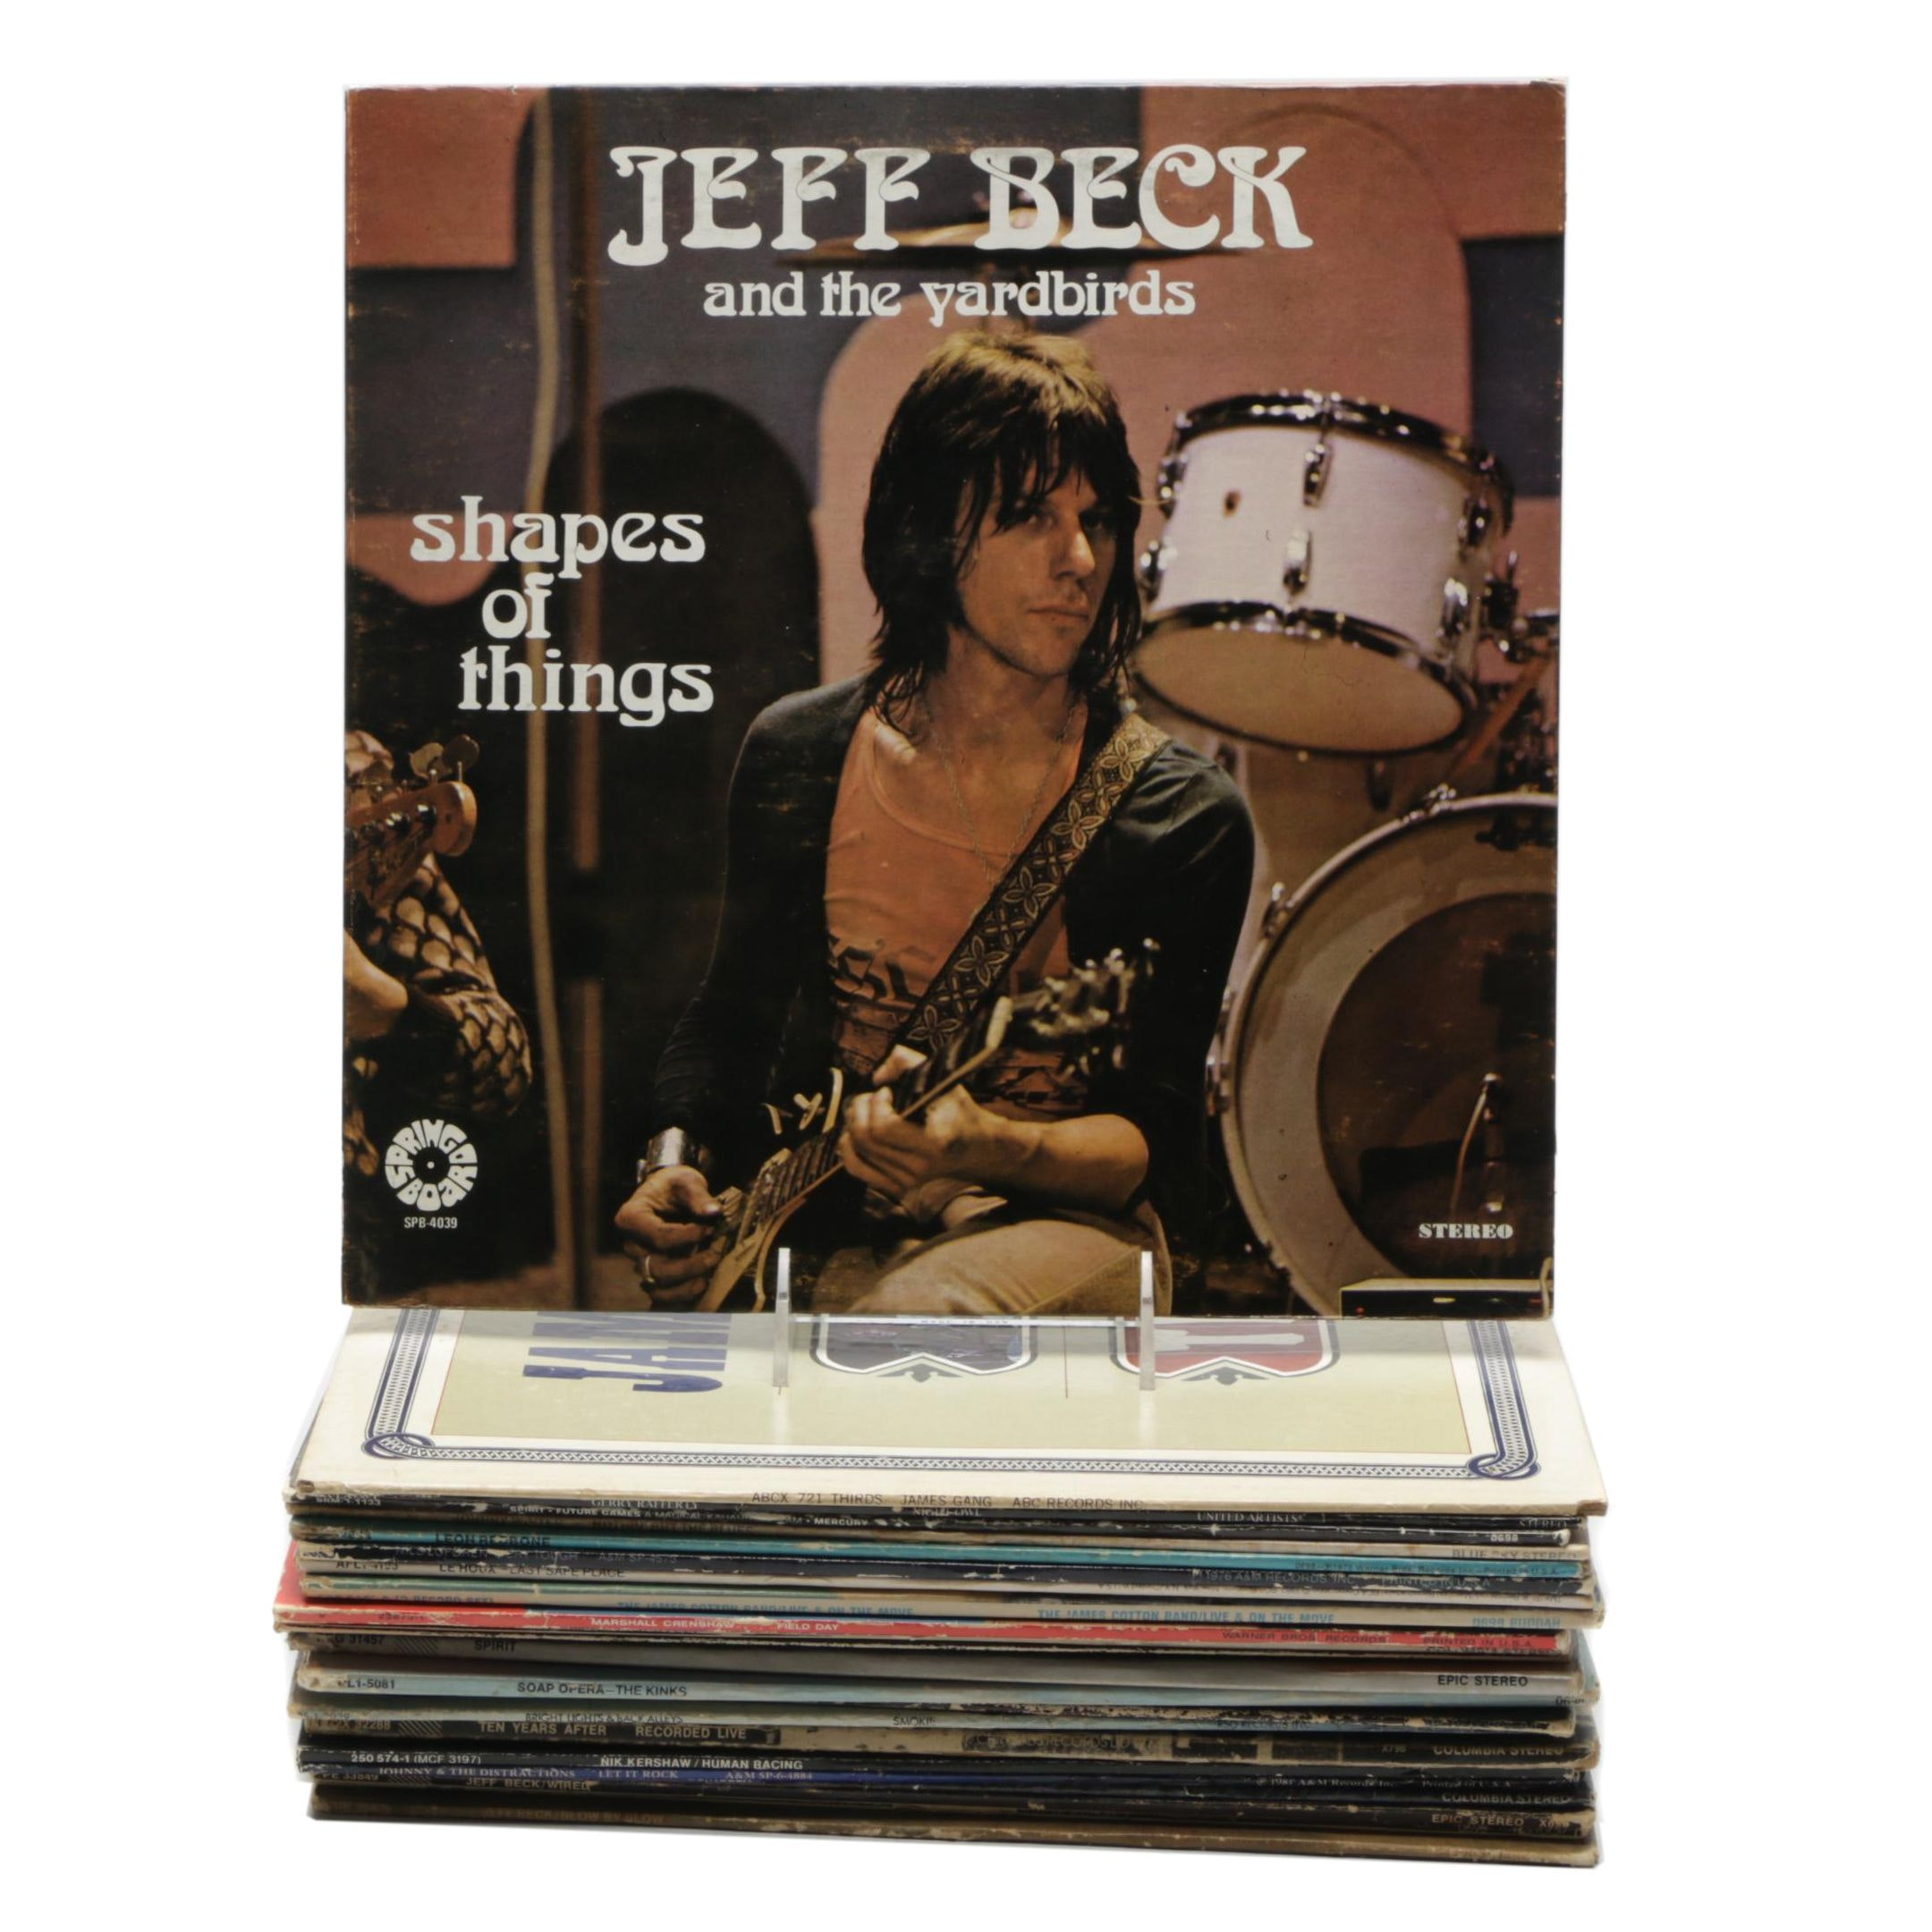 1970s and 1980s Rock Records Including The Kinks, Jeff Beck and More